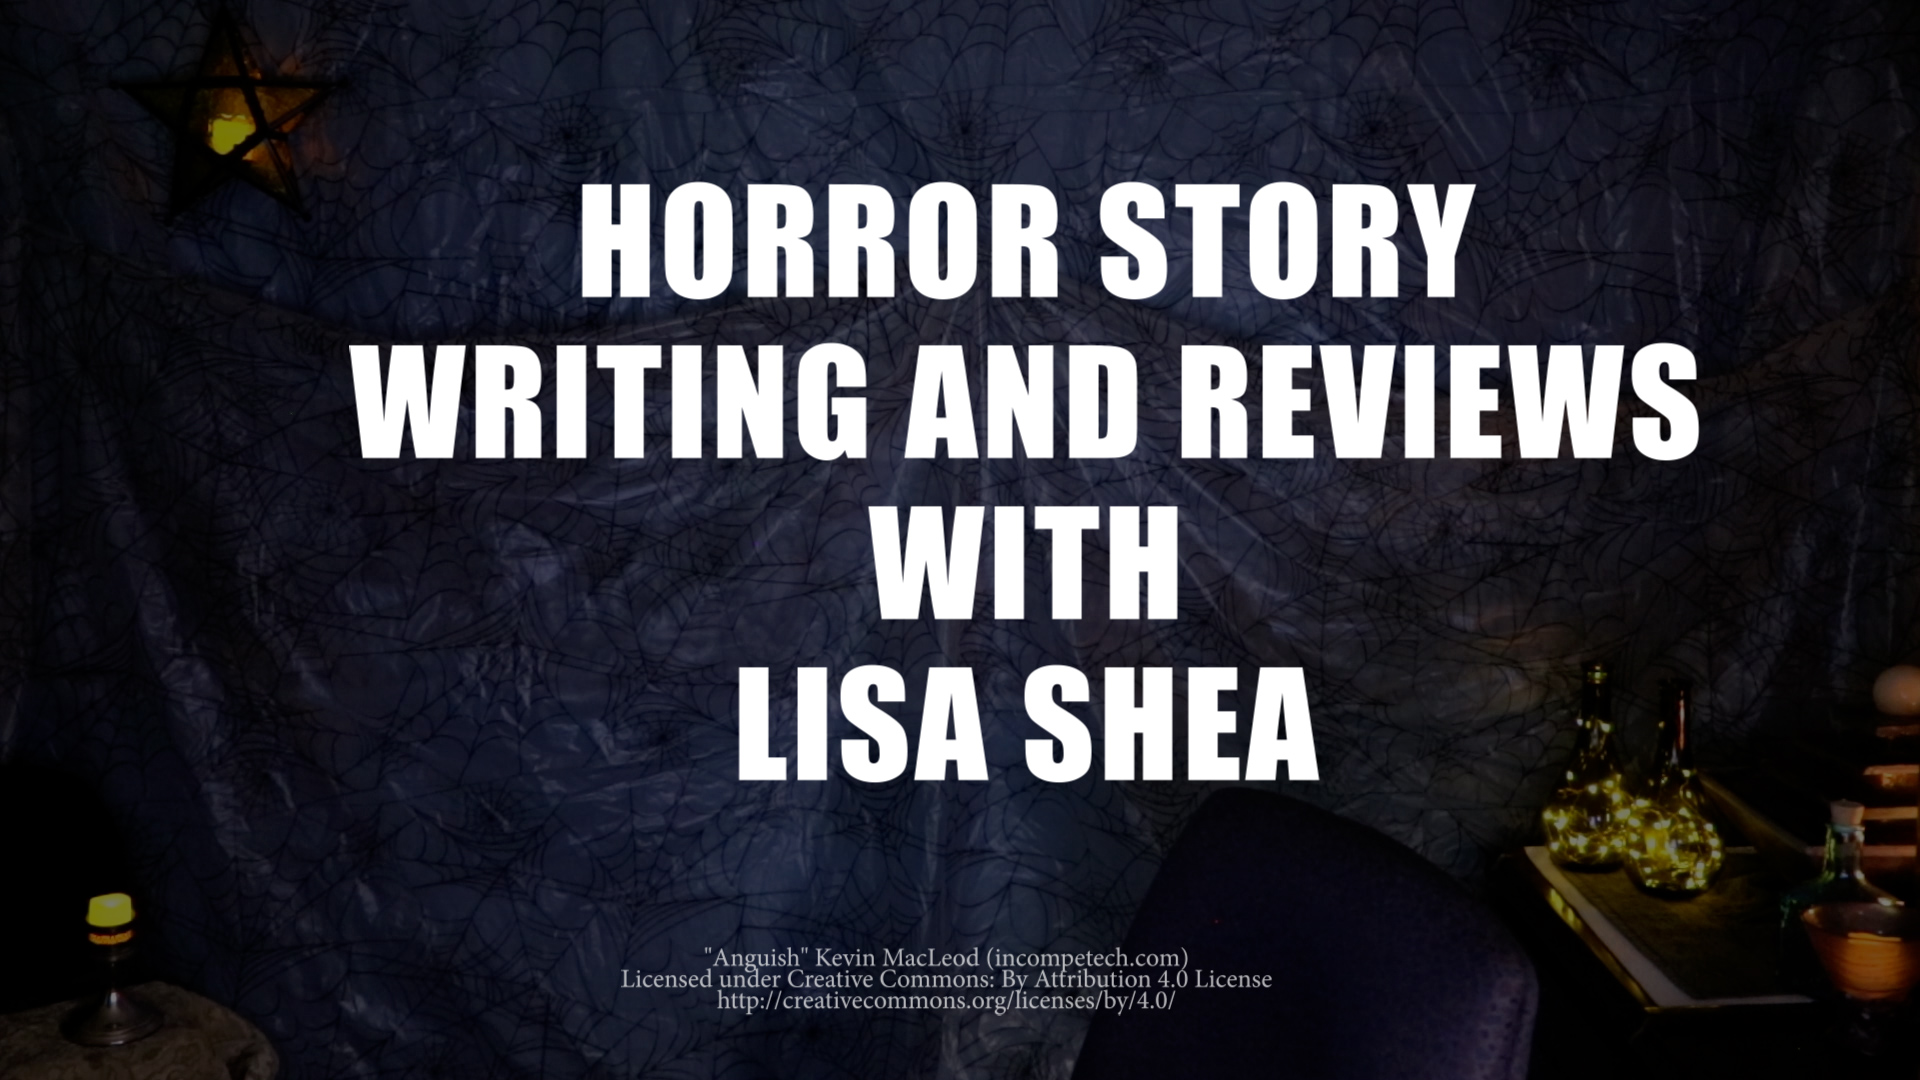 Horror Story Writing and Reviews